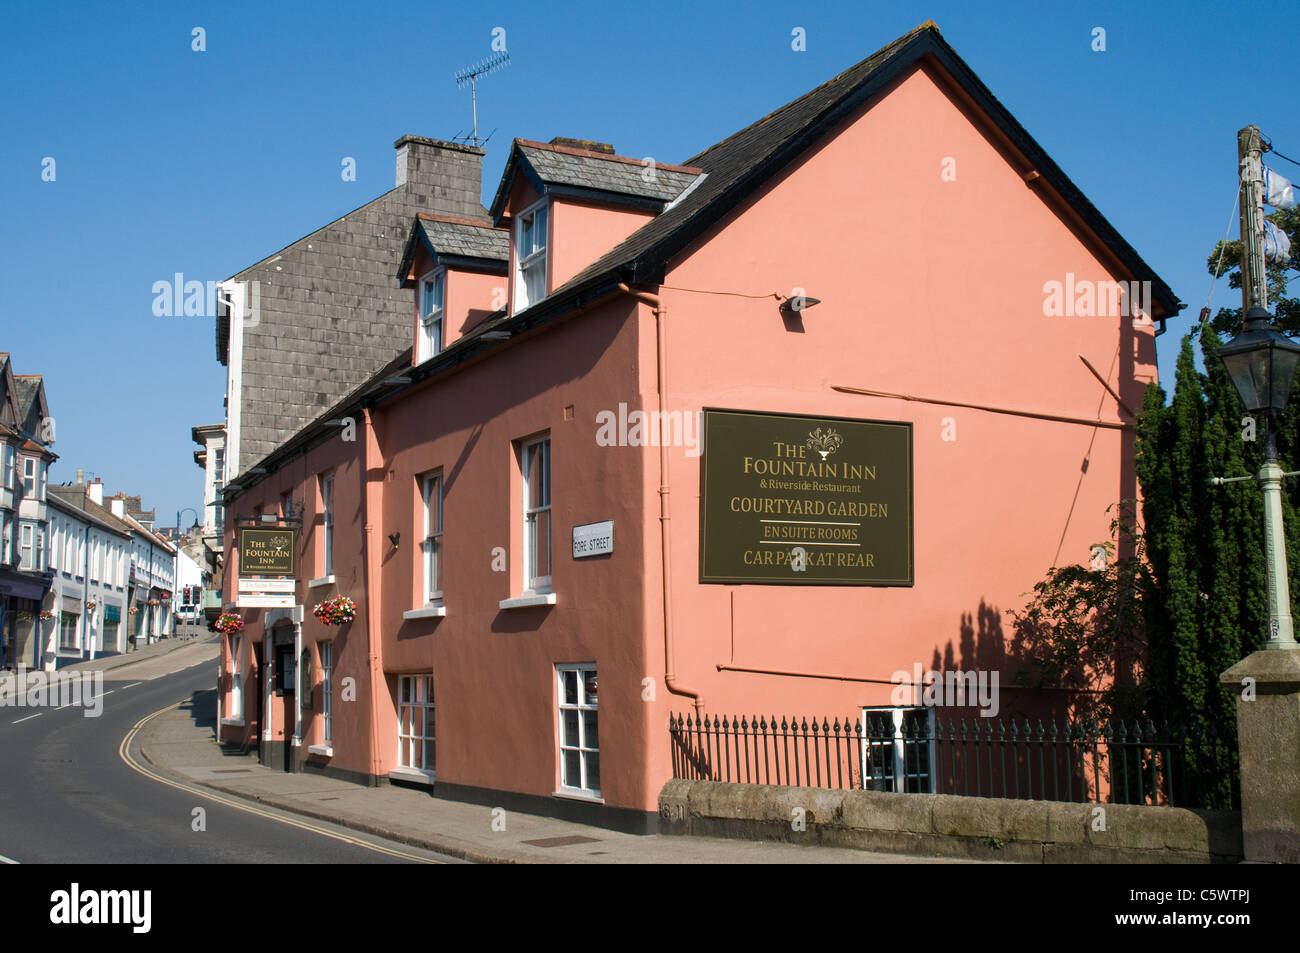 The Fountain Inn is a 16th century Coaching Inn in Fore Street, Okehampton. It offers accommodation,  restaurant, - Stock Image